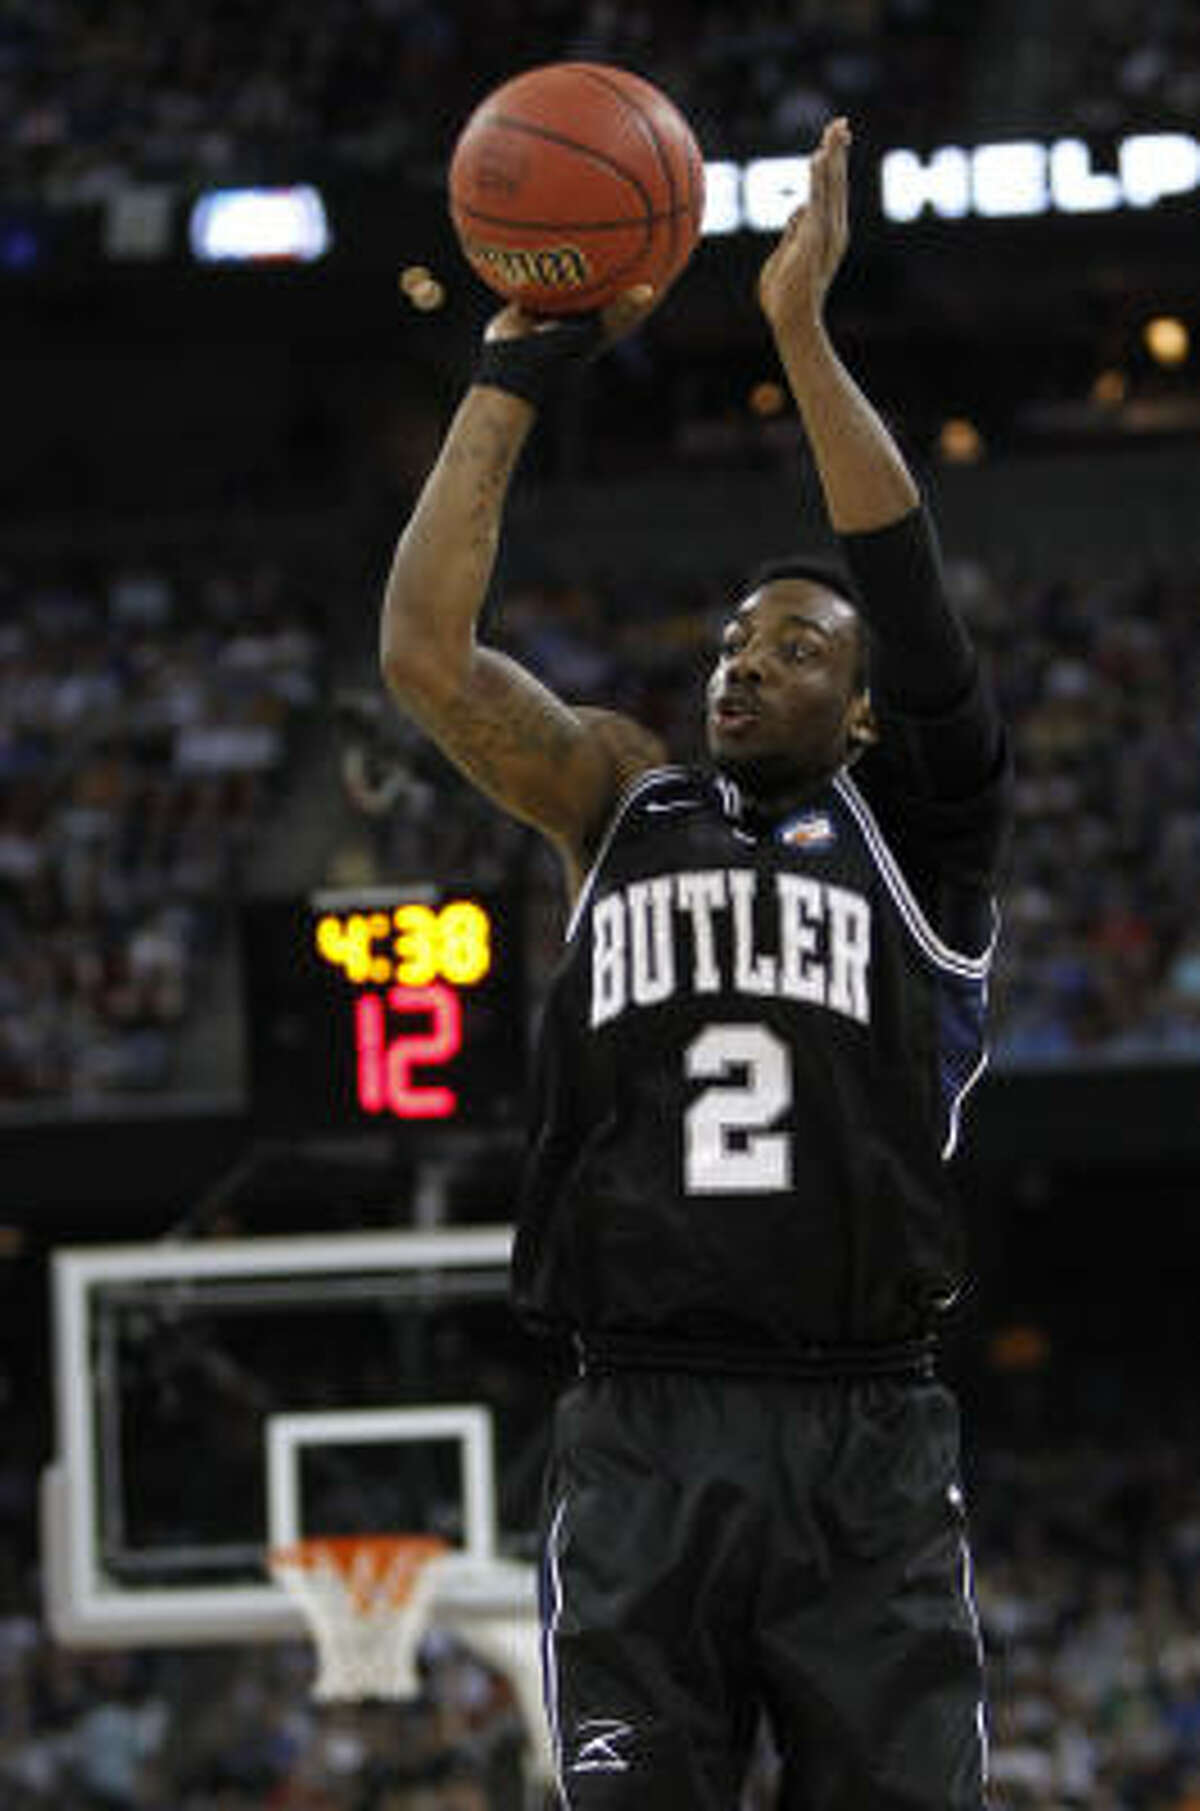 Butler guard Shawn Vanzant makes a 3-pointer in the second half.